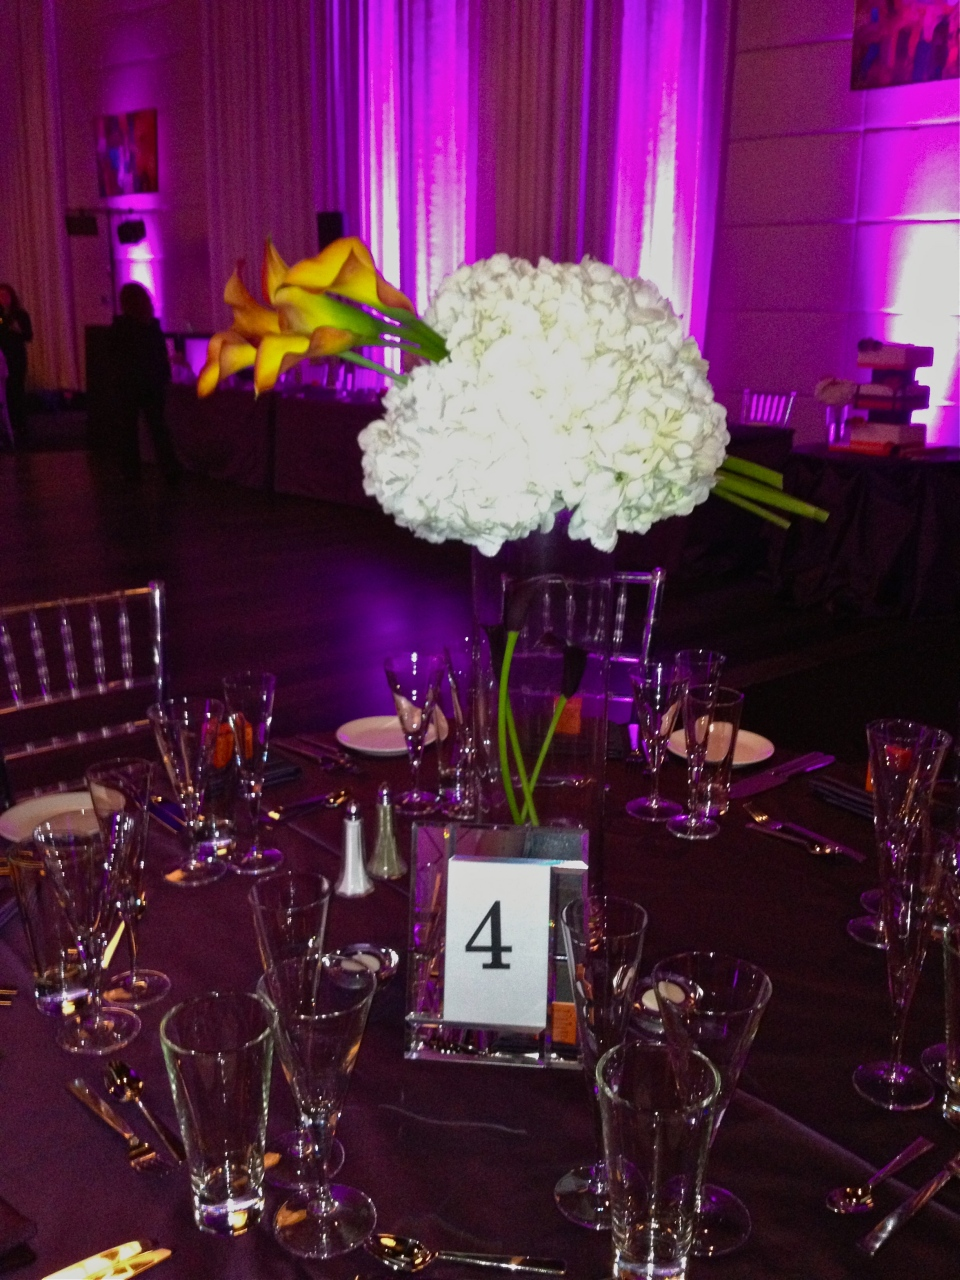 Calla lilies appear to be stuck completely through the hydrangea globe of the tall centerpieces.